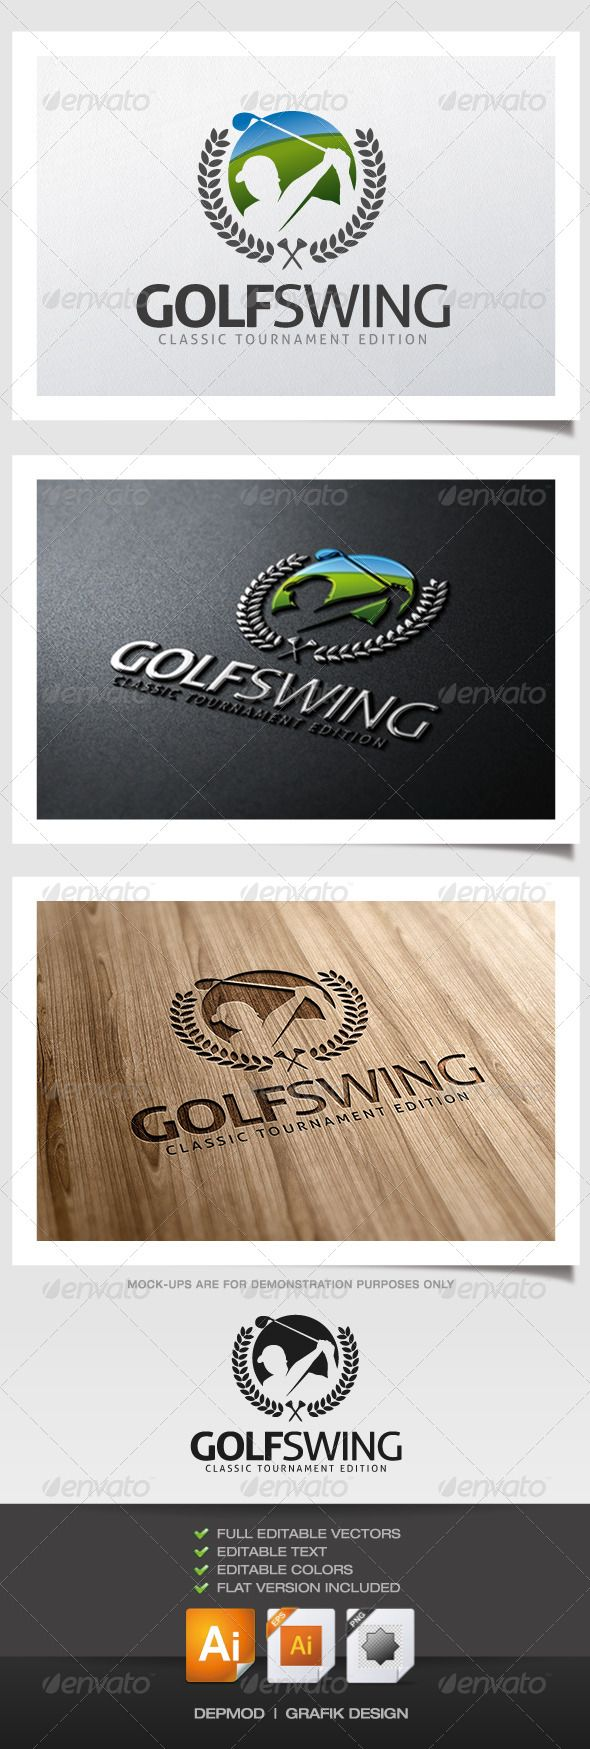 Golf Swing Logo — Transparent PNG #tournament #swing • Available here → https://graphicriver.net/item/golf-swing-logo/6067946?ref=pxcr